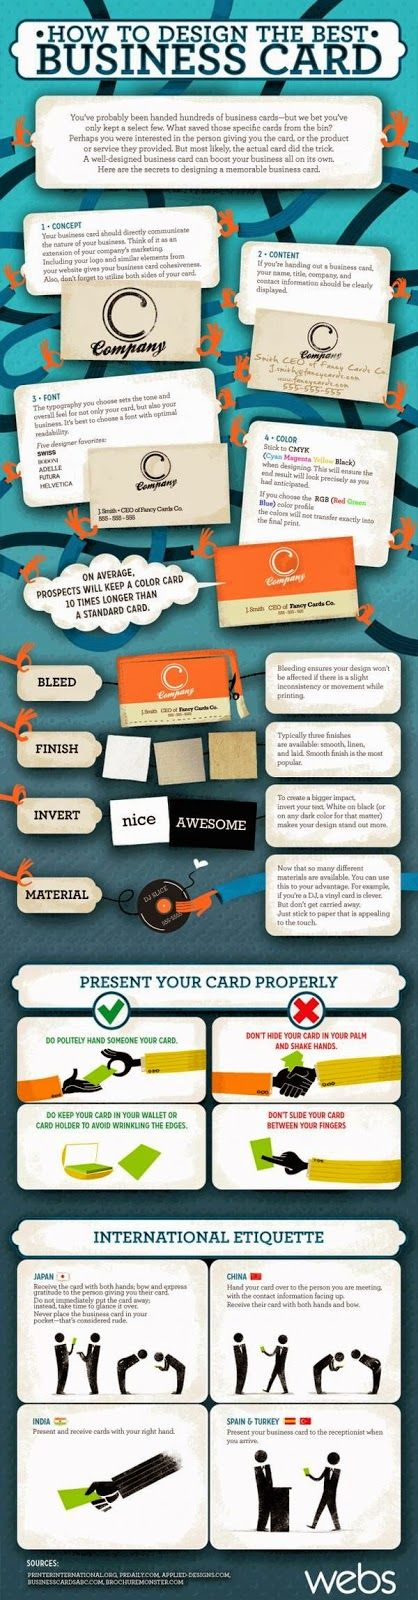 How To Desing The Best Business Cards